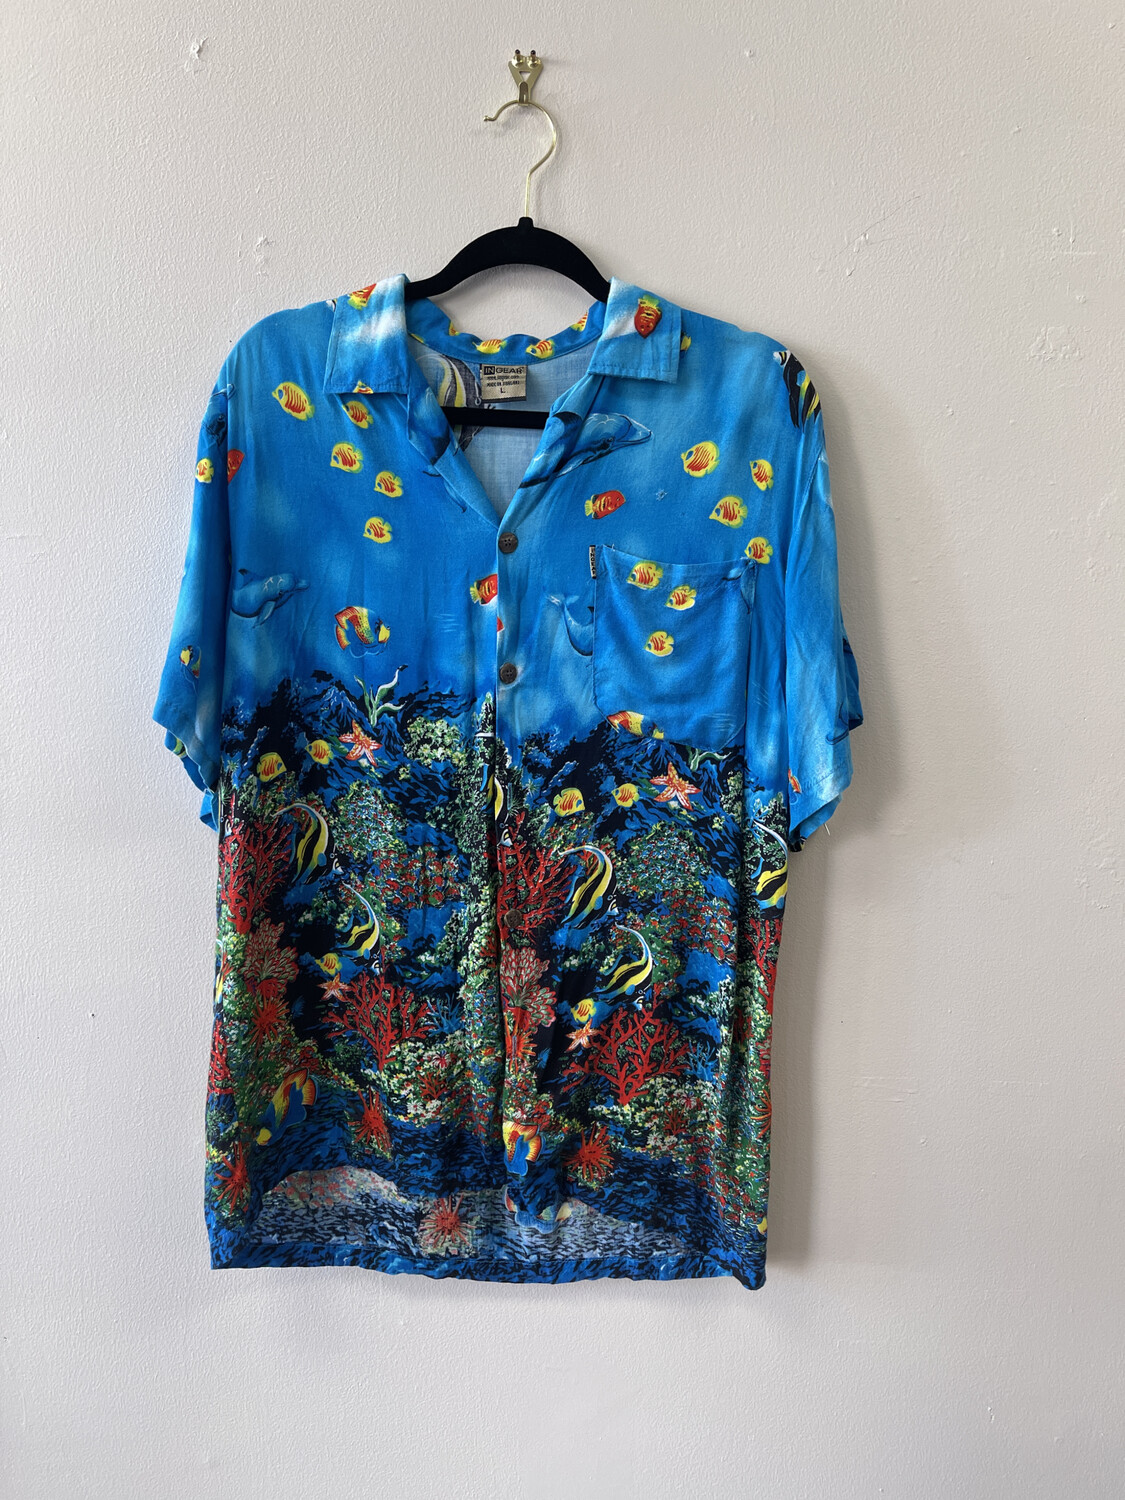 In Gear Coral Reef Tropical Shirt, Size L